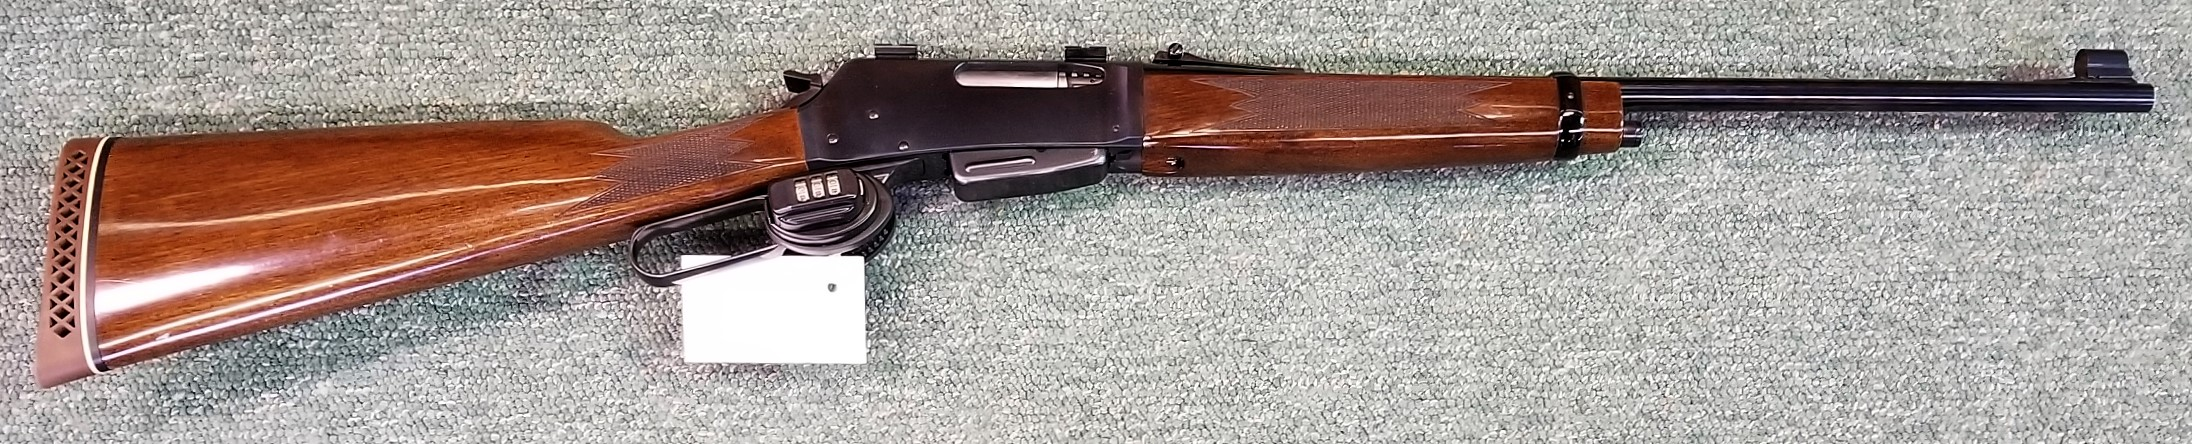 Browning BLR .308 Win. (used)